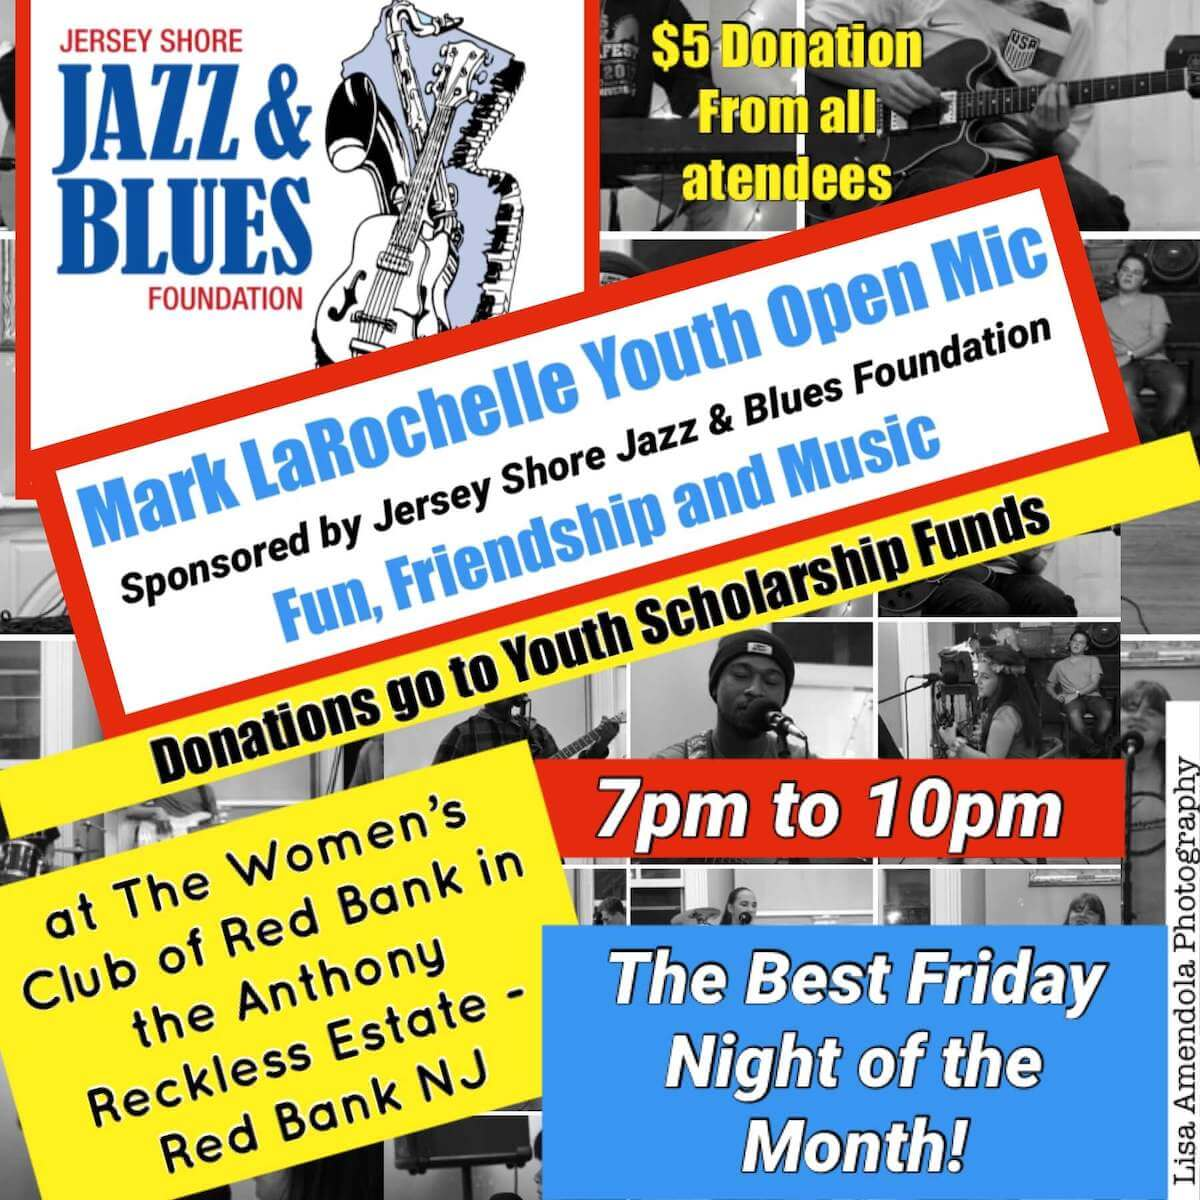 The Mark La Rochelle Youth Open Mic Night on Sept 10th